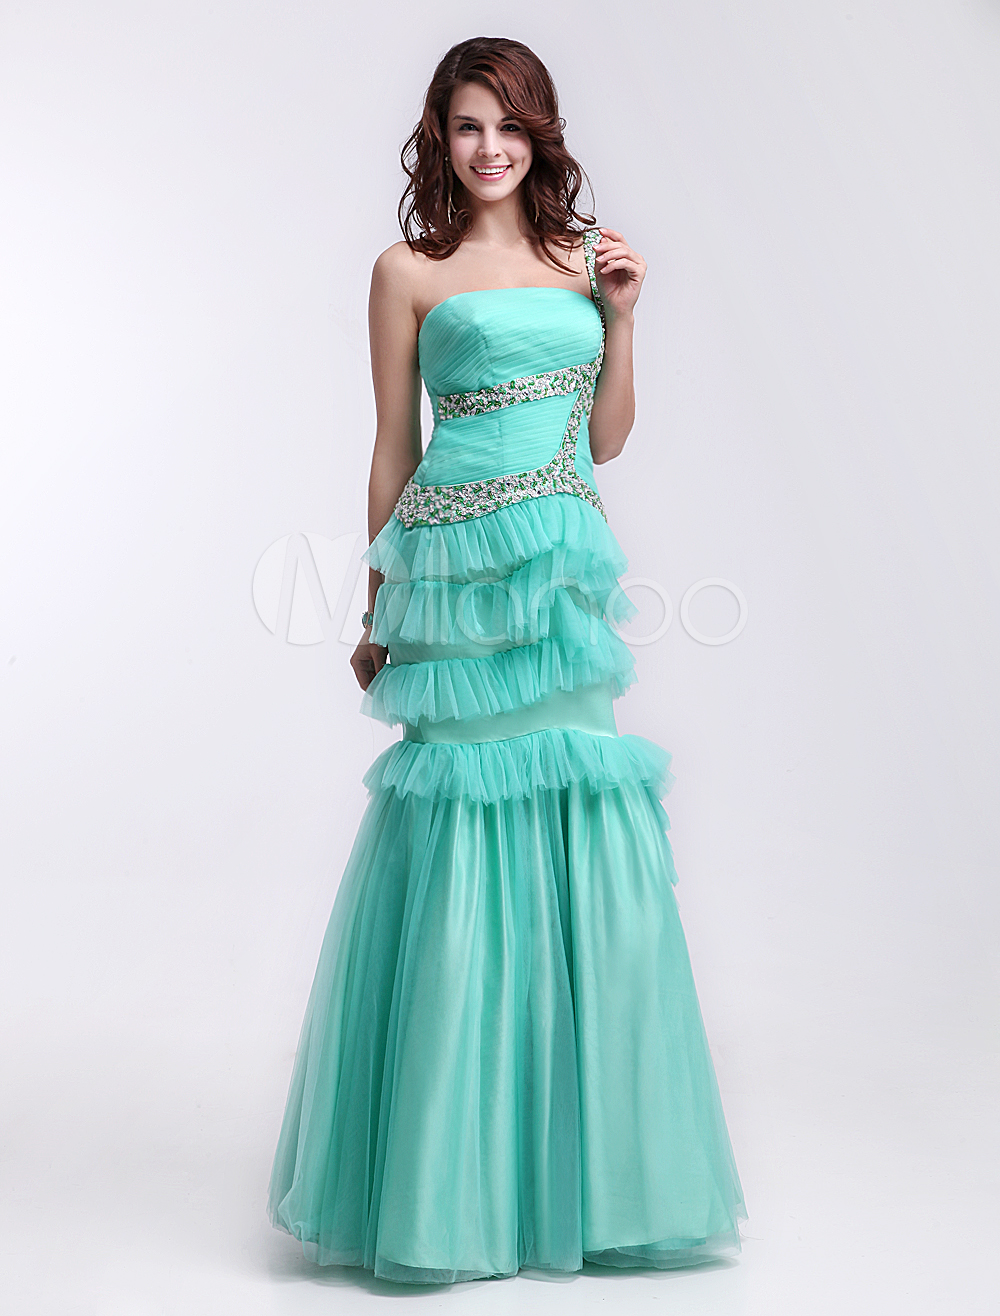 Fashion mint green strapless floor length tiered mermaid prom dress